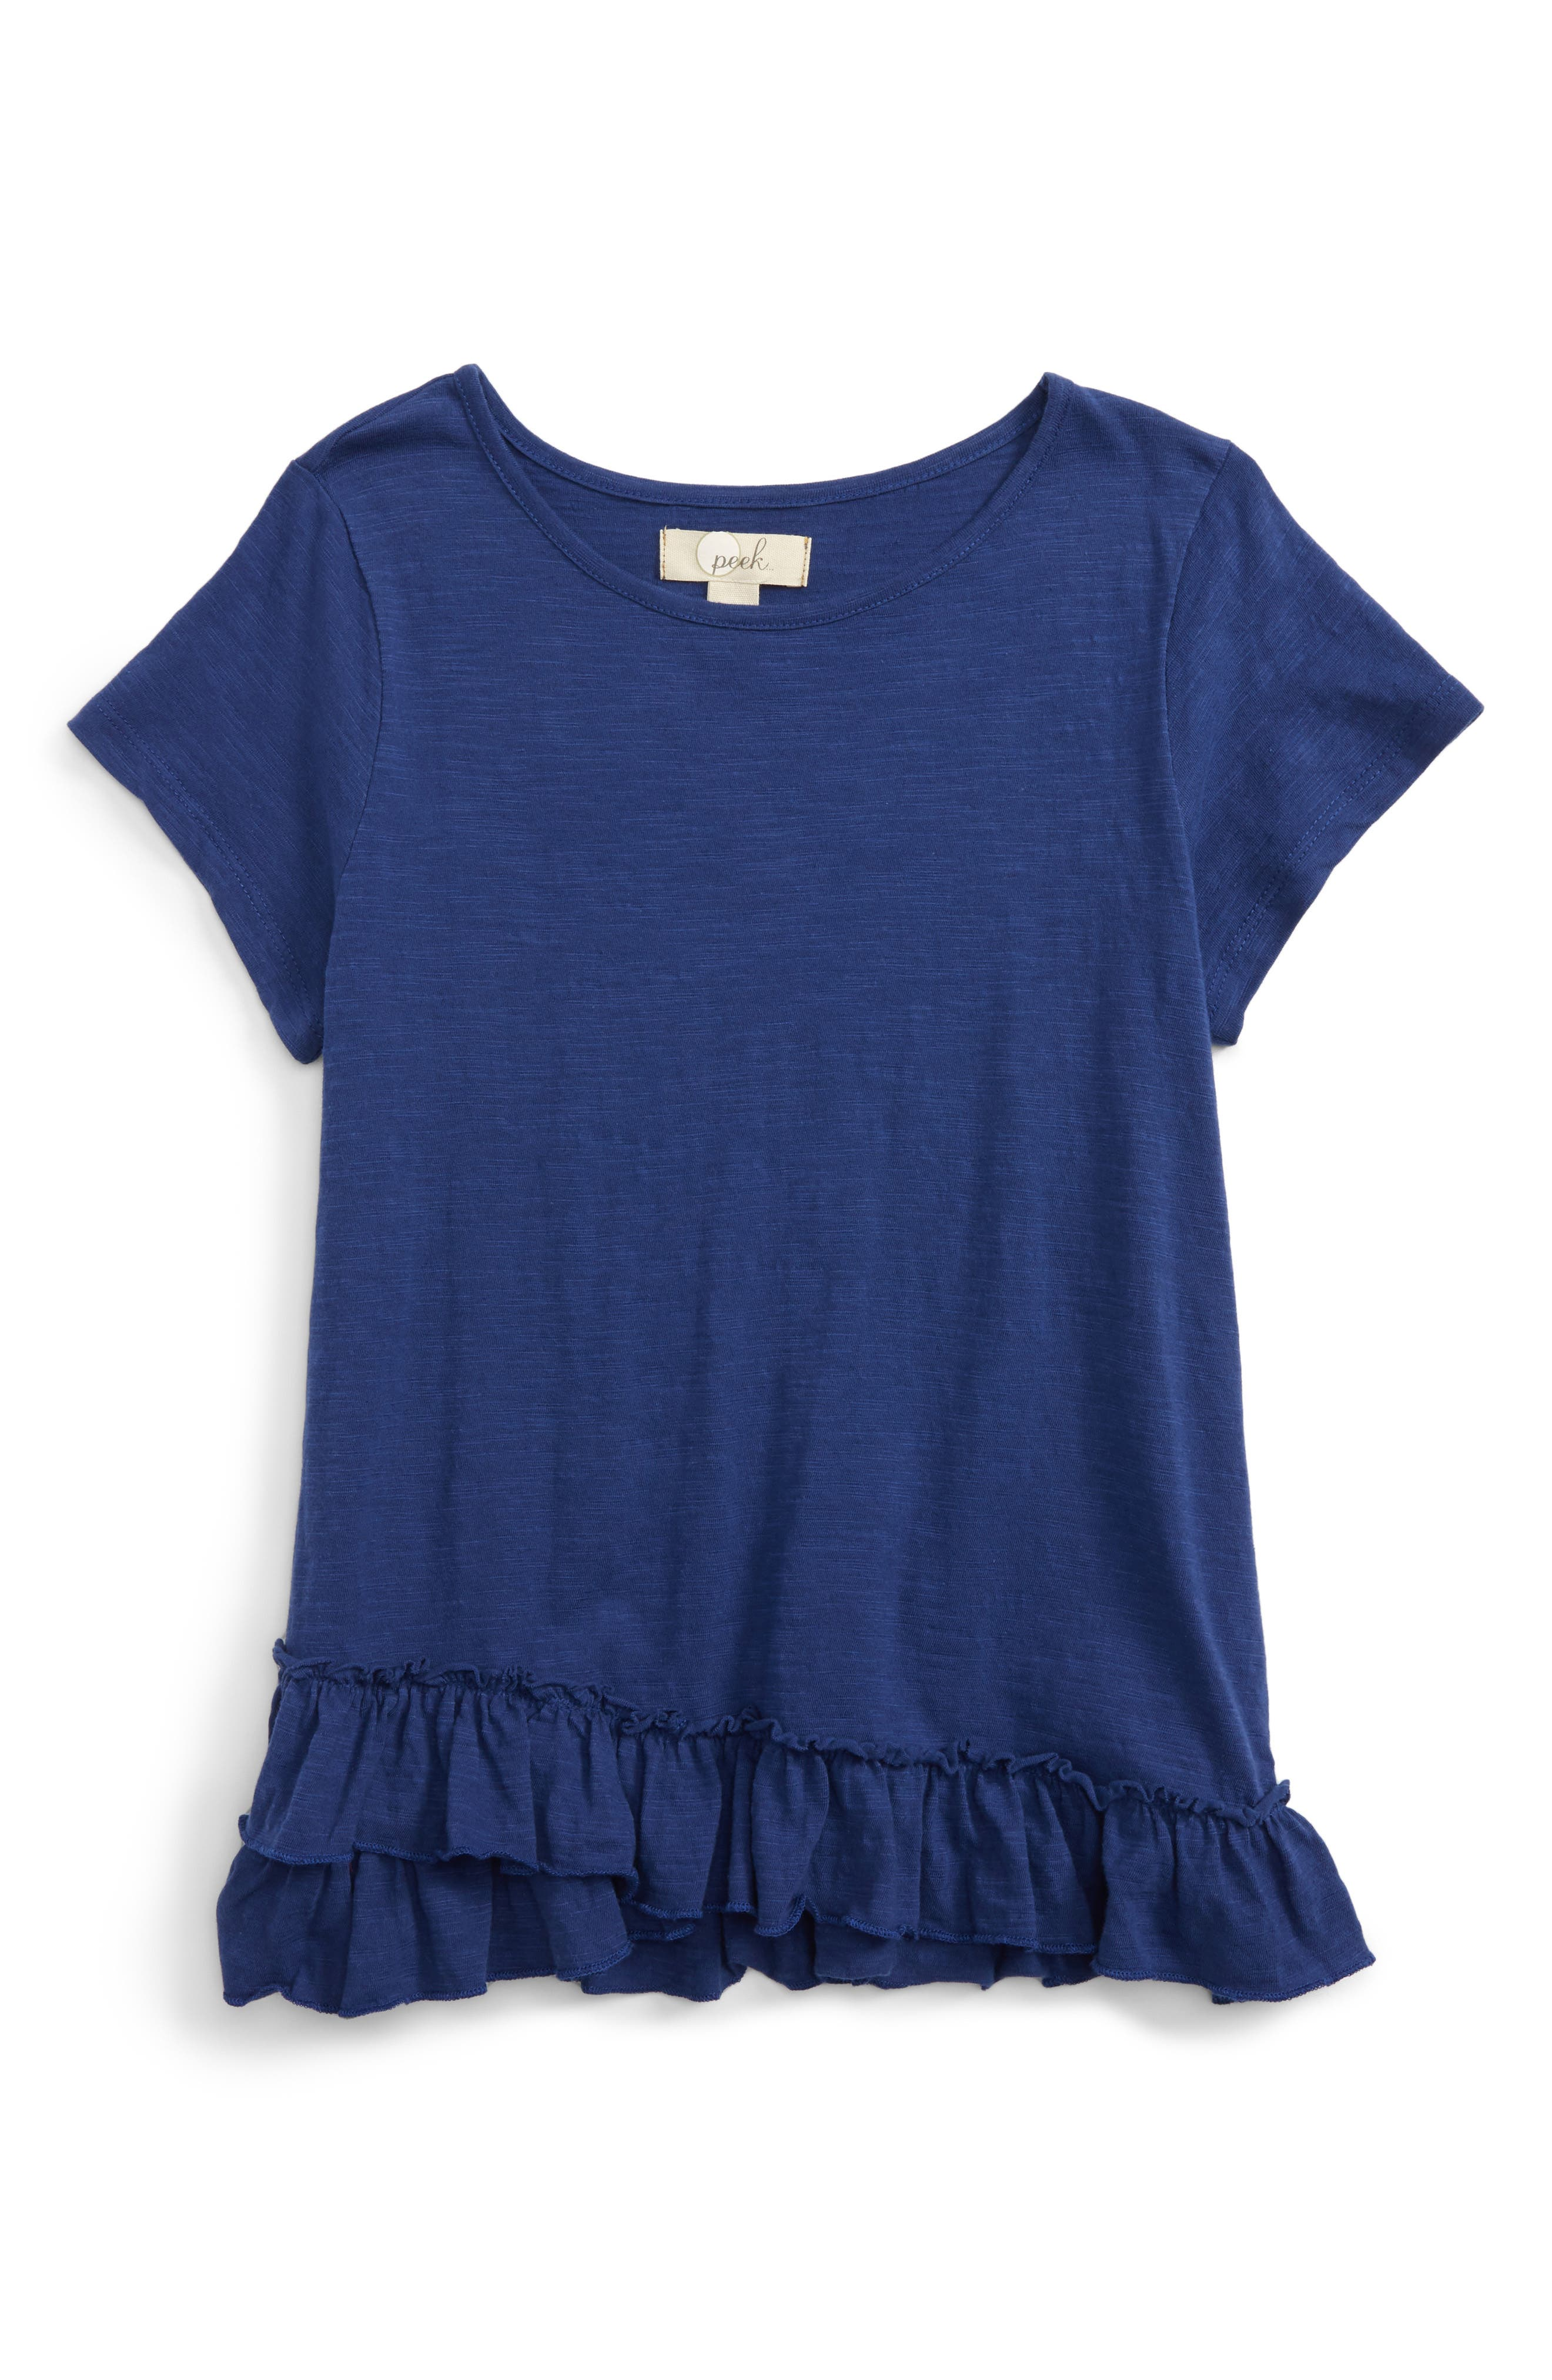 Peek Jessica Ruffle Tee (Toddler Girls, Little Girls & Big Girls)